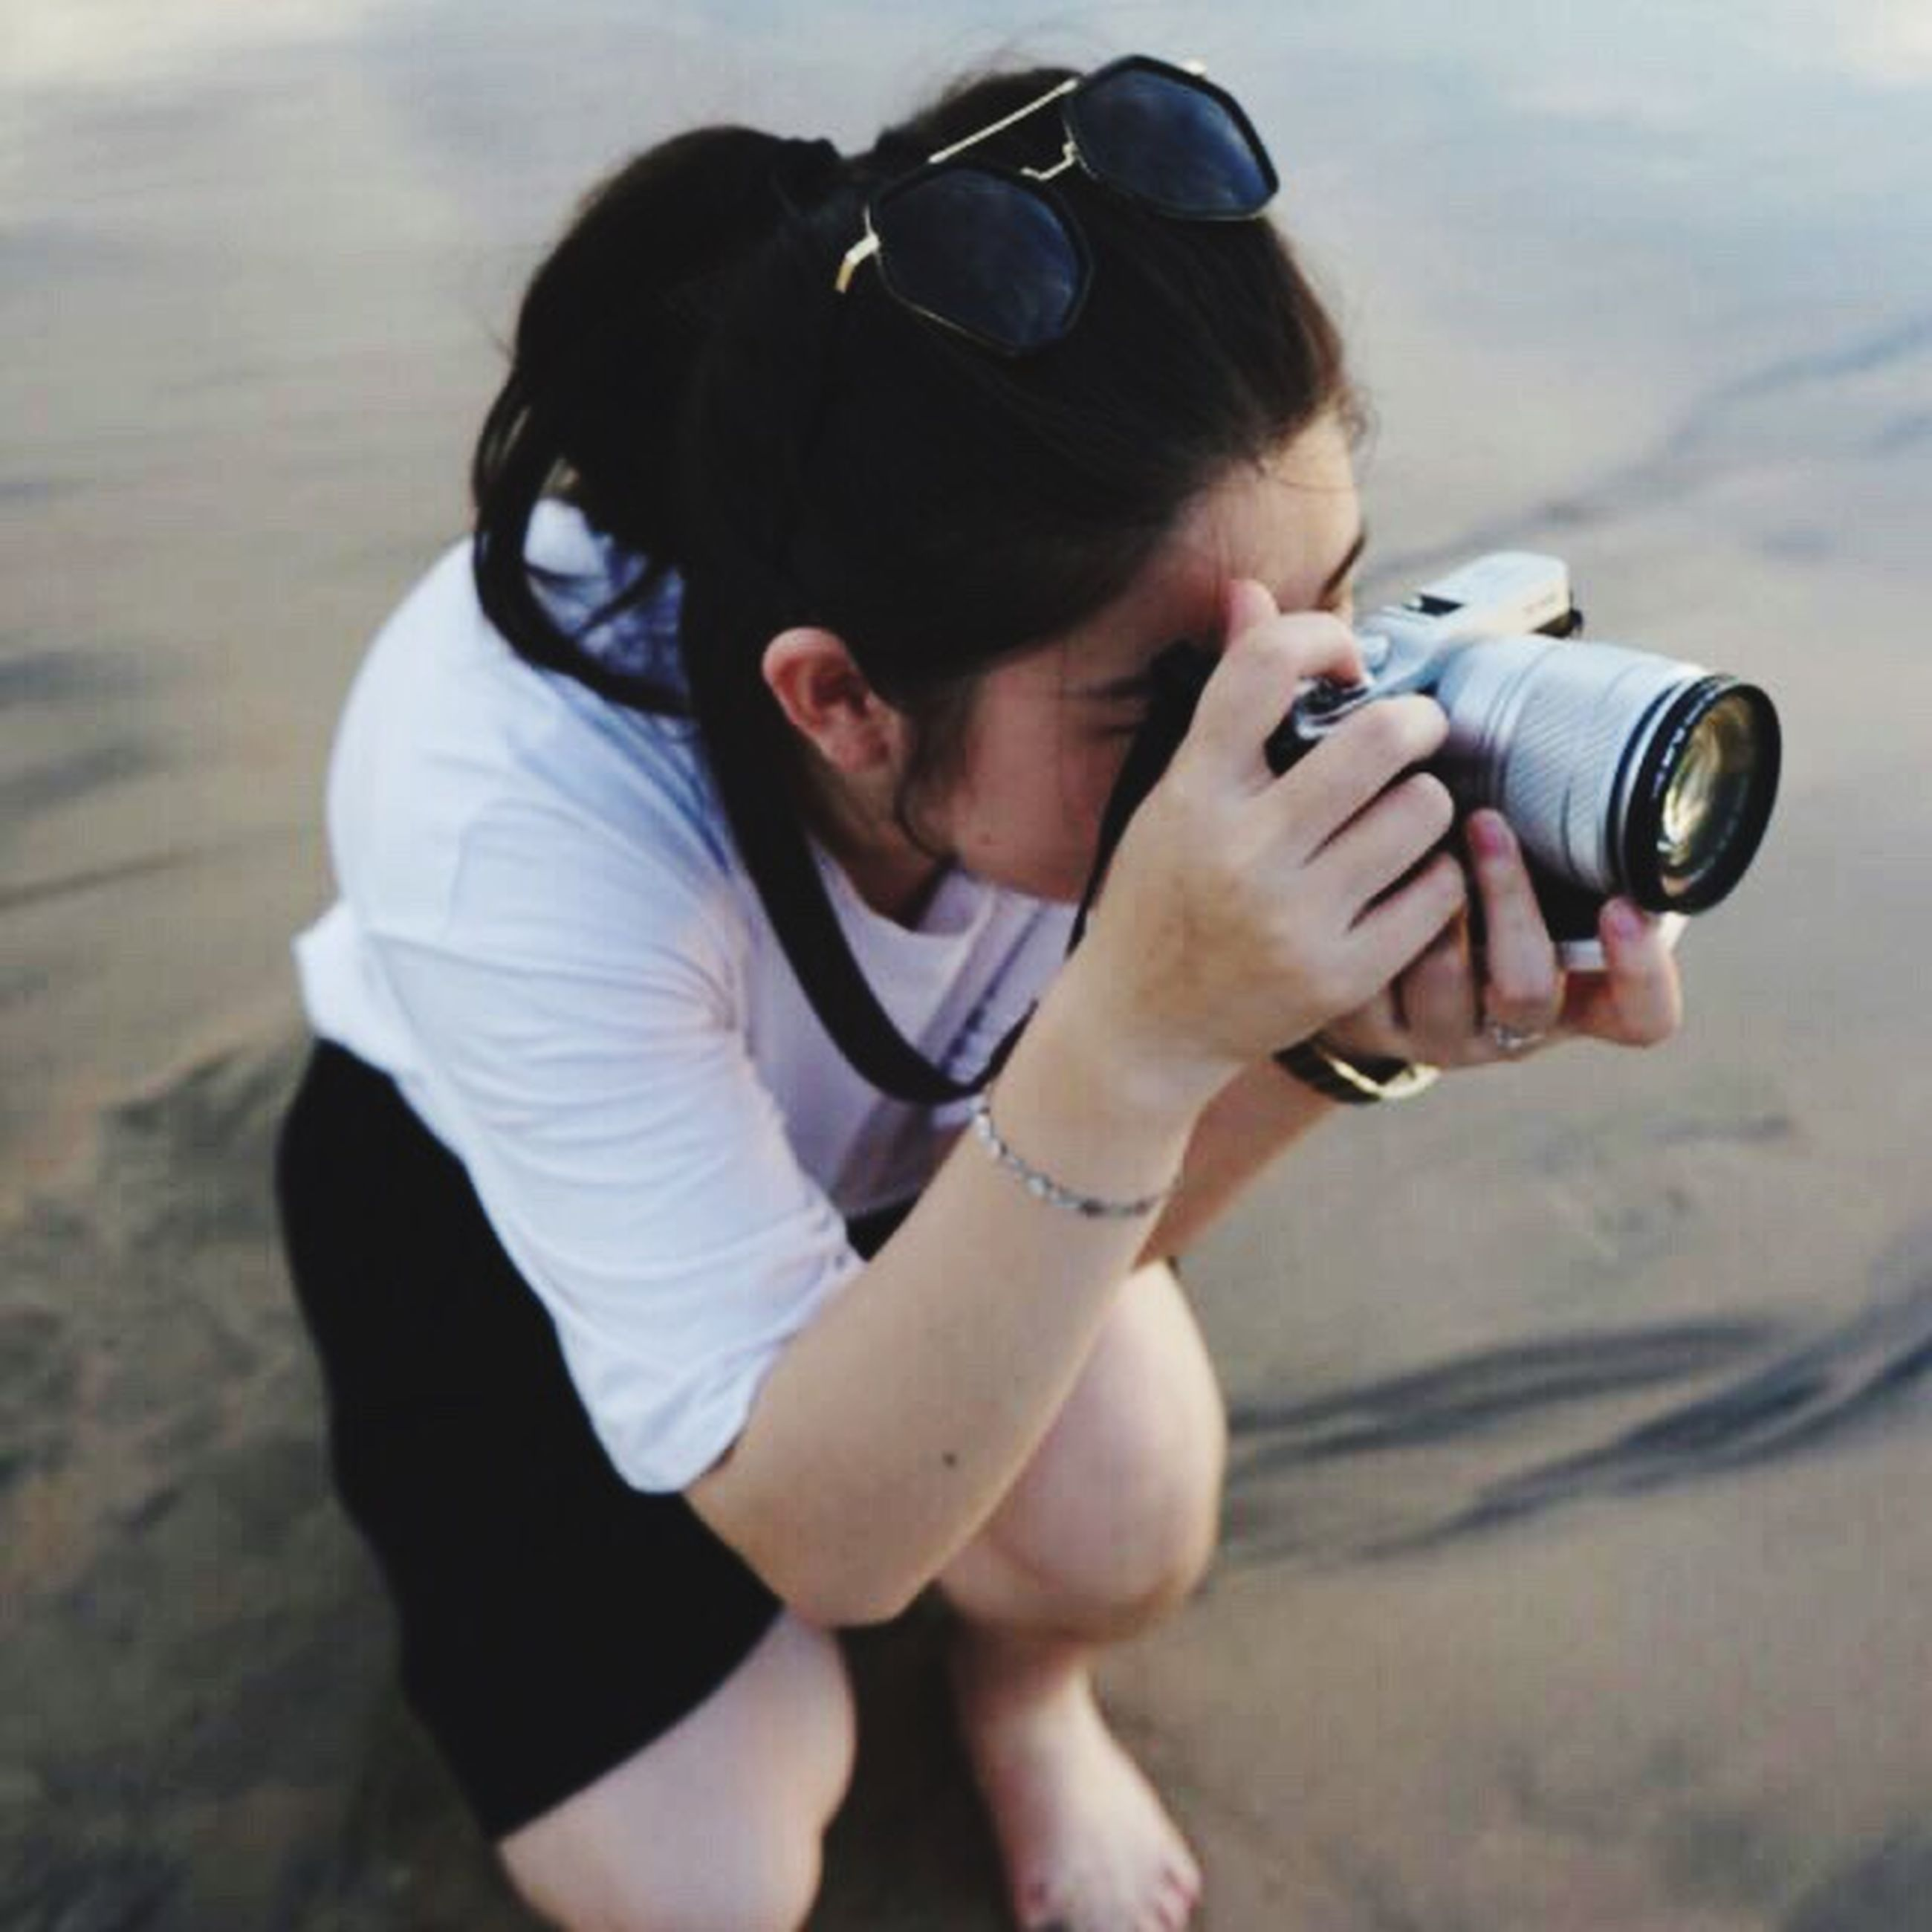 photography themes, camera - photographic equipment, photographing, real people, one person, photographer, leisure activity, outdoors, casual clothing, day, technology, digital single-lens reflex camera, slr camera, young adult, full length, medium-length hair, women, young women, adult, people, adults only